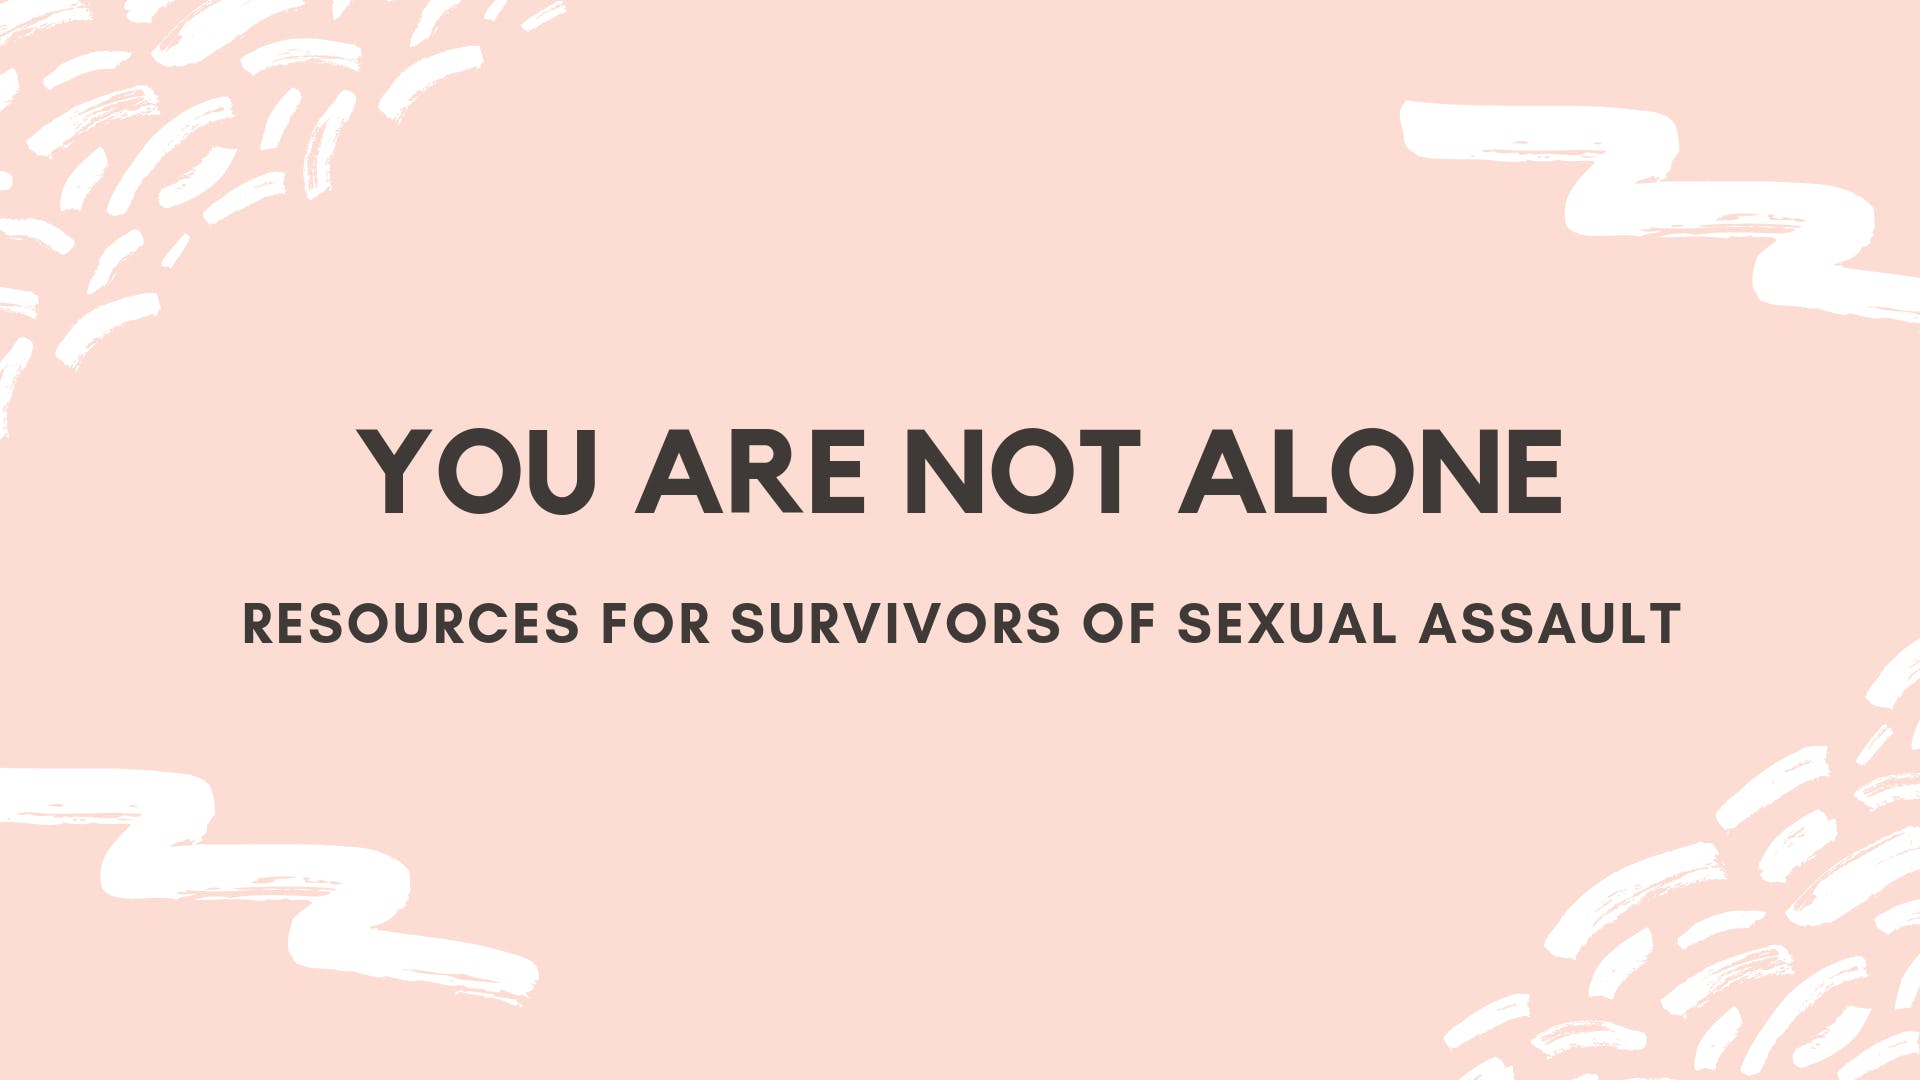 YOU ARE NOT ALONE— Resources for Survivors of Sexual Assault